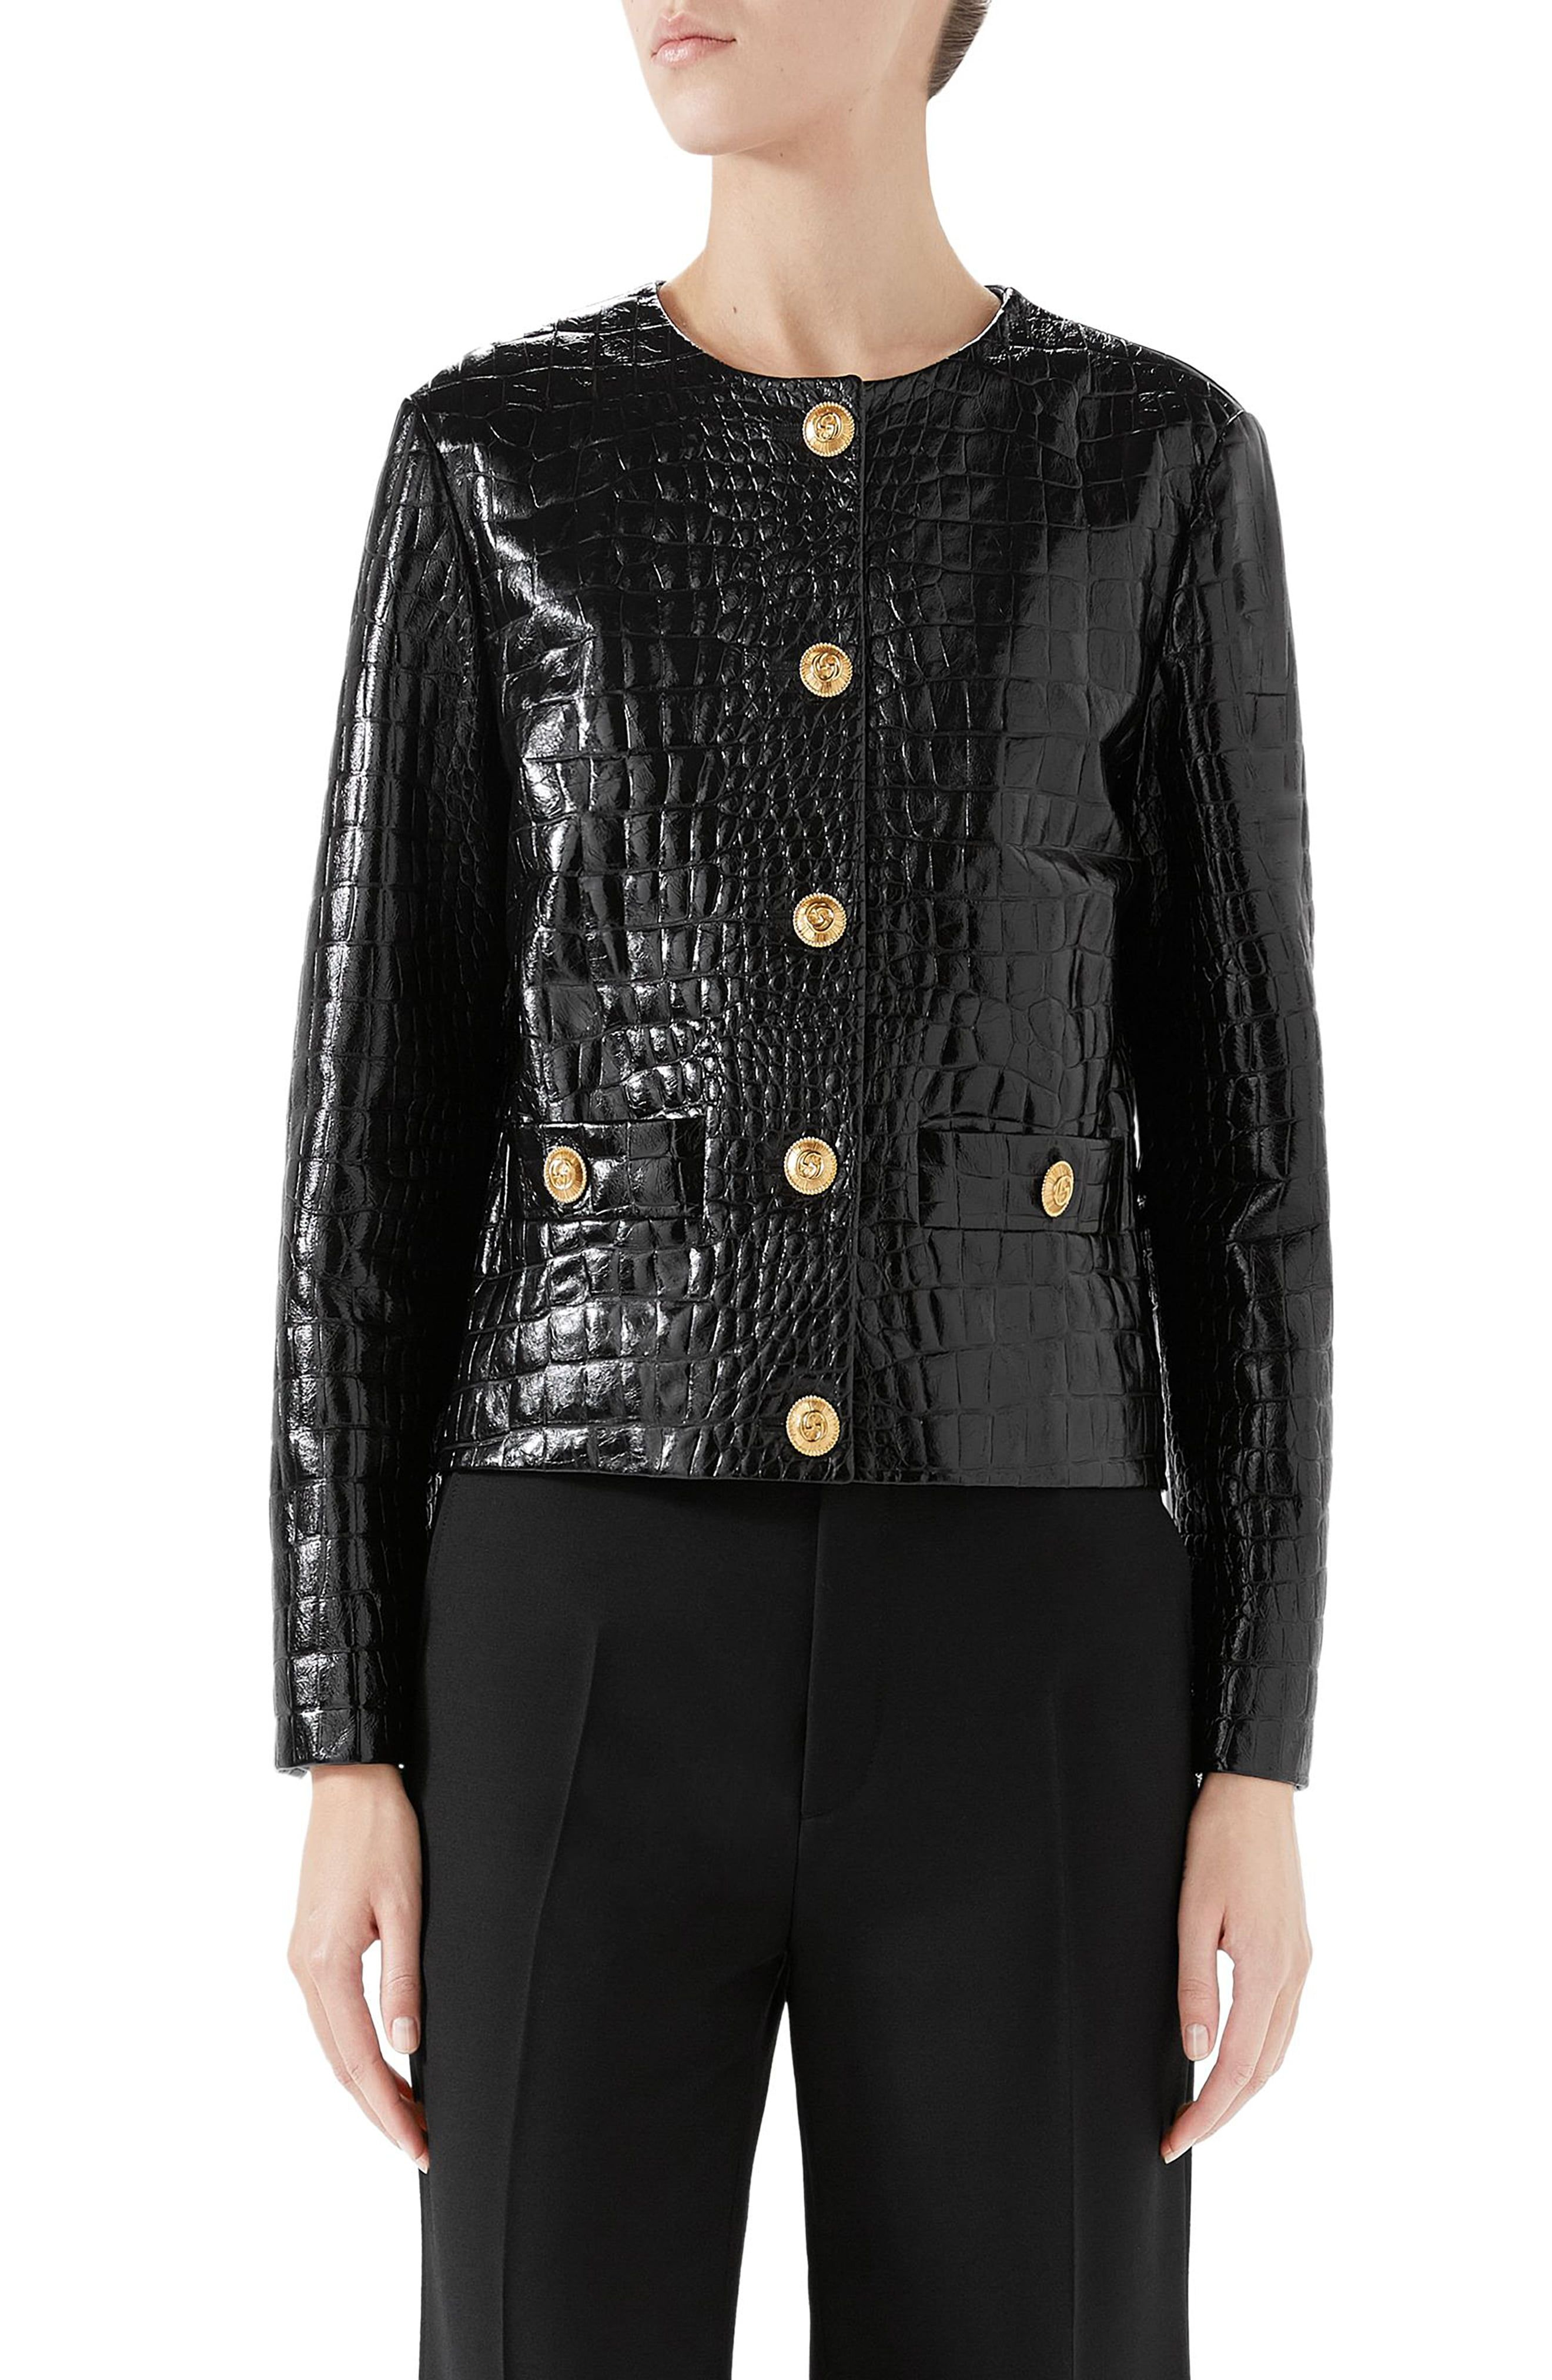 Women's Gucci Croc Embossed Leather Jacket, Size 8 US / 44